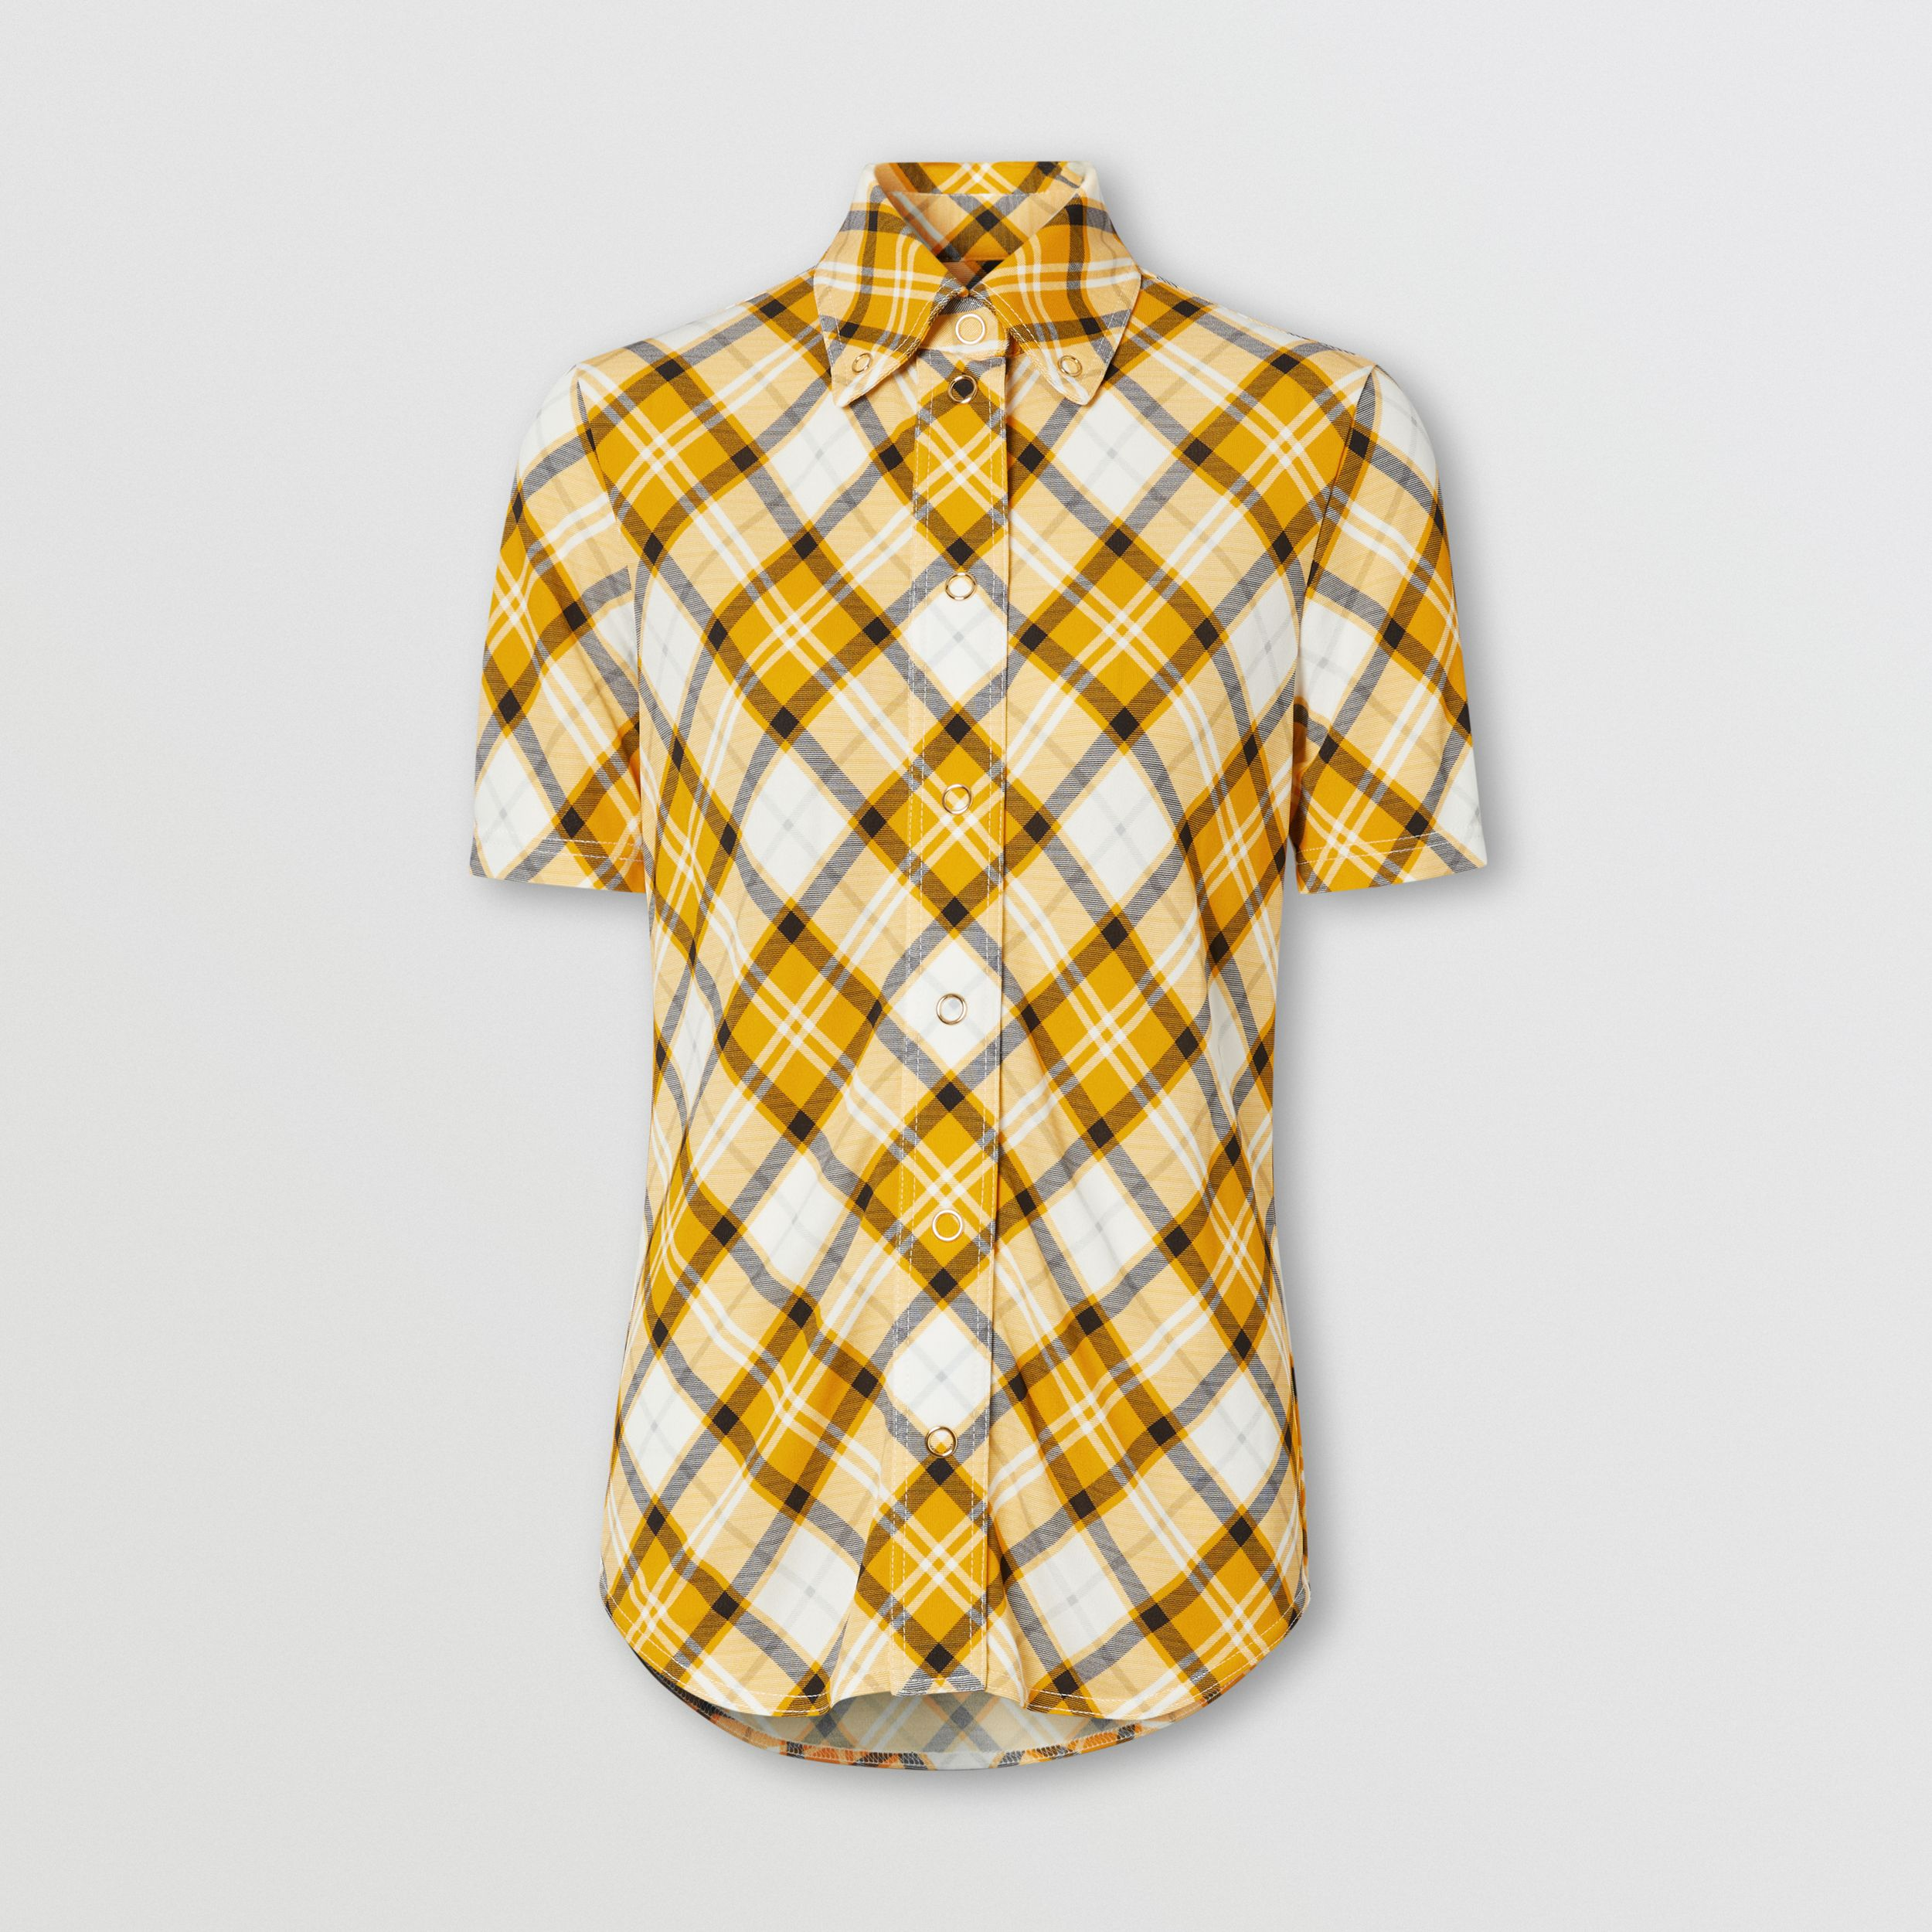 Short-sleeve Check Jersey Shirt in Citrus Orange - Women | Burberry - 3